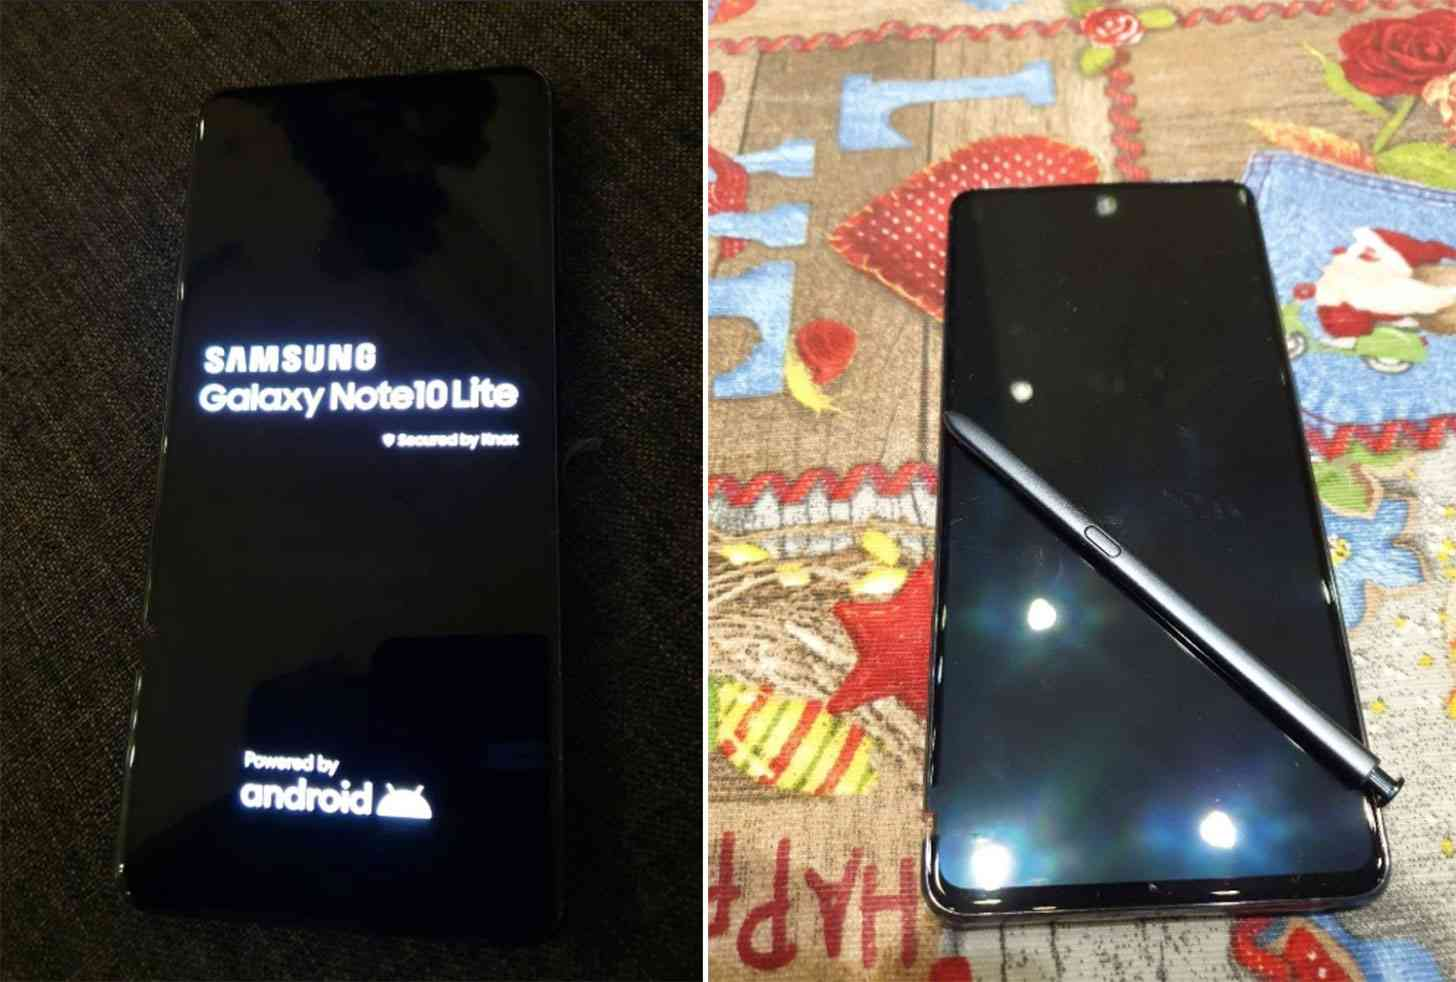 Galaxy Note 10 Lite hands-on photos